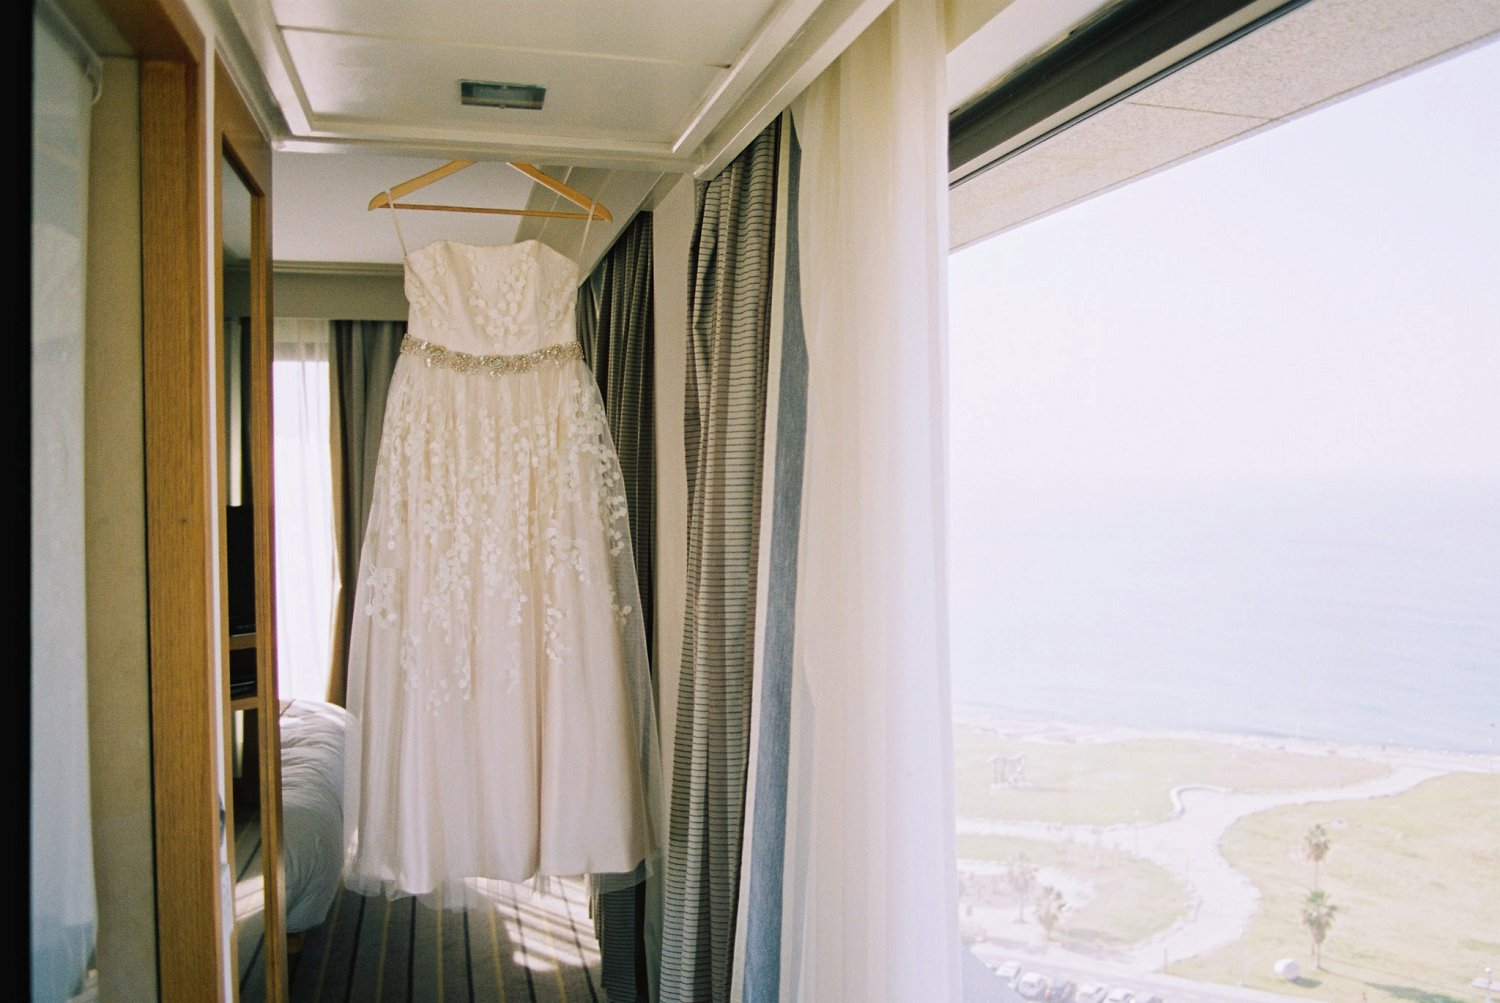 Wedding dress hanging in David InterContinental Hotel overlooking Tel Aviv coastline